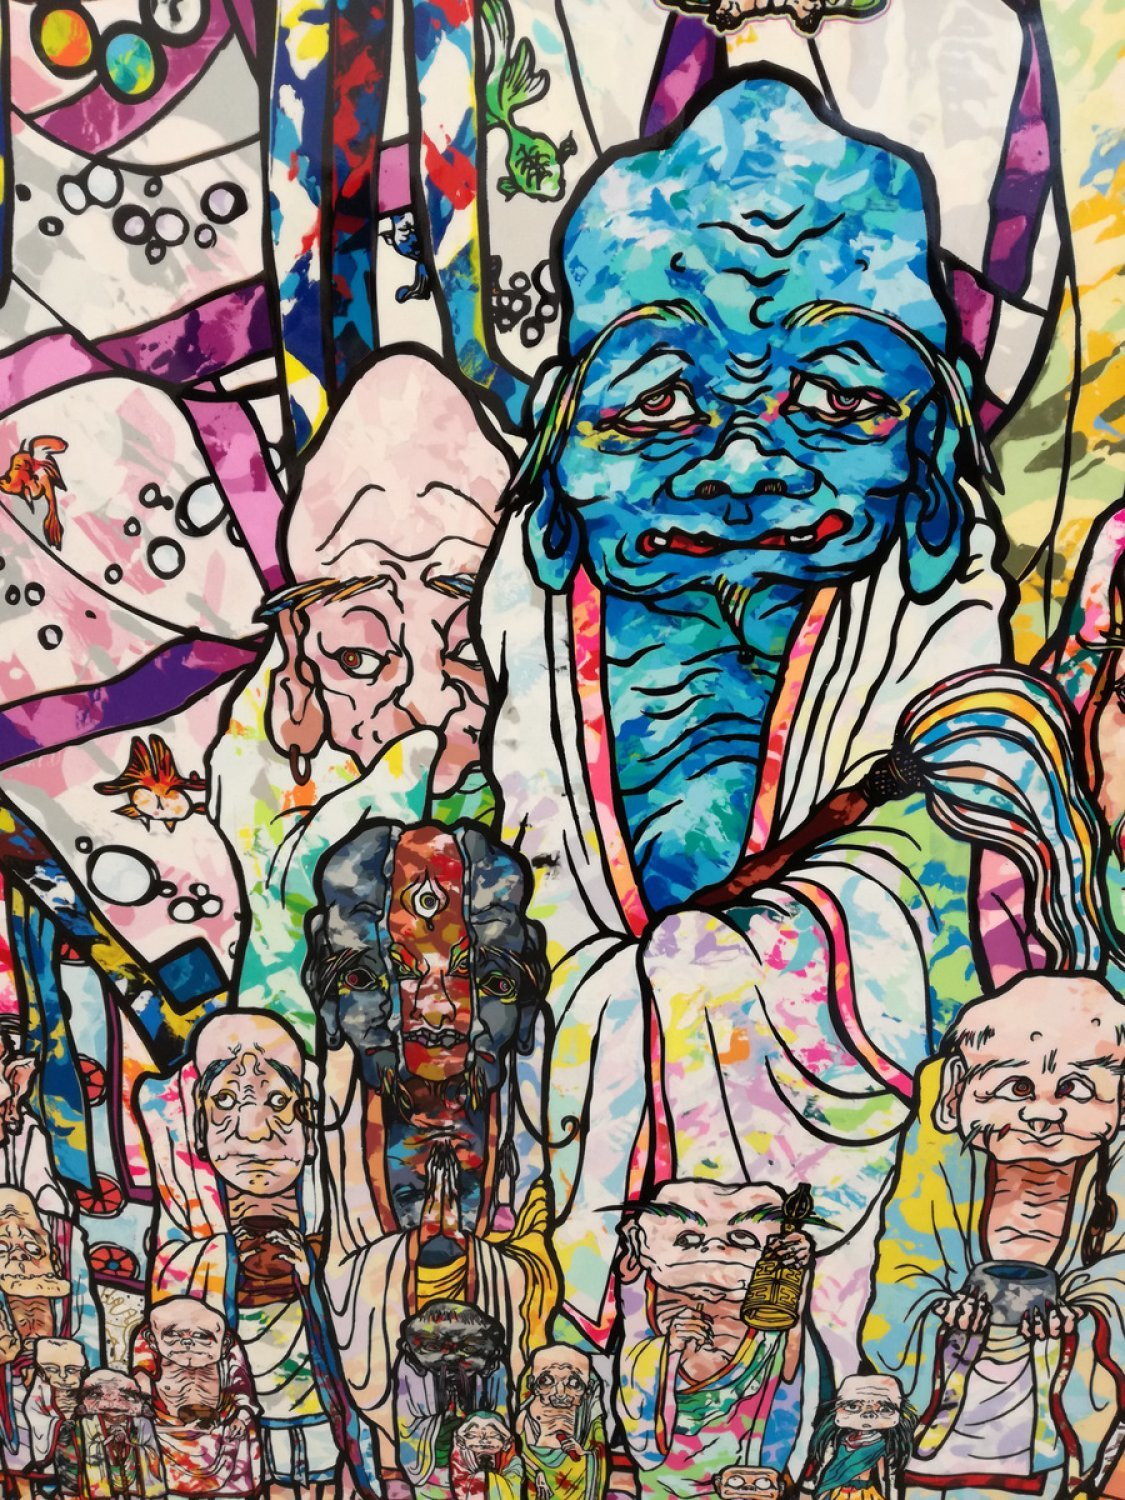 Exposition de Takashi Murakami - Learning the Magic of Painting